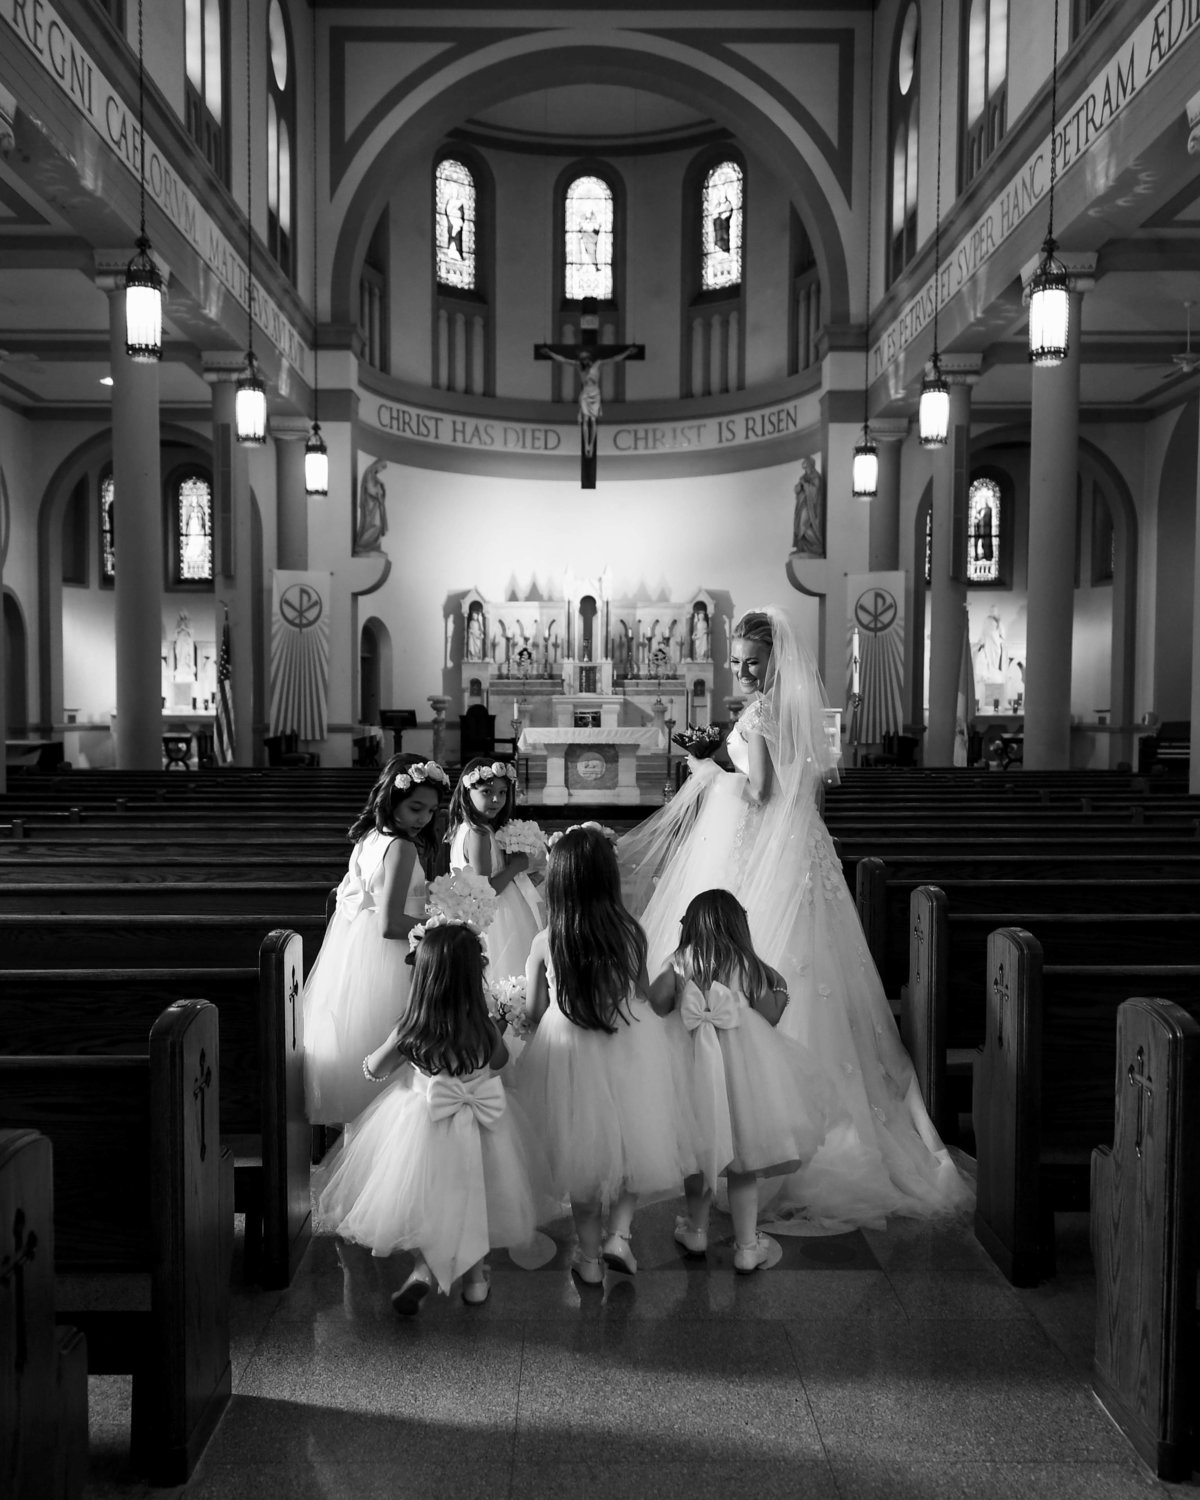 St. Peter's Wedding by Washington DC Wedding Photographer, Erin Tetterton Photography